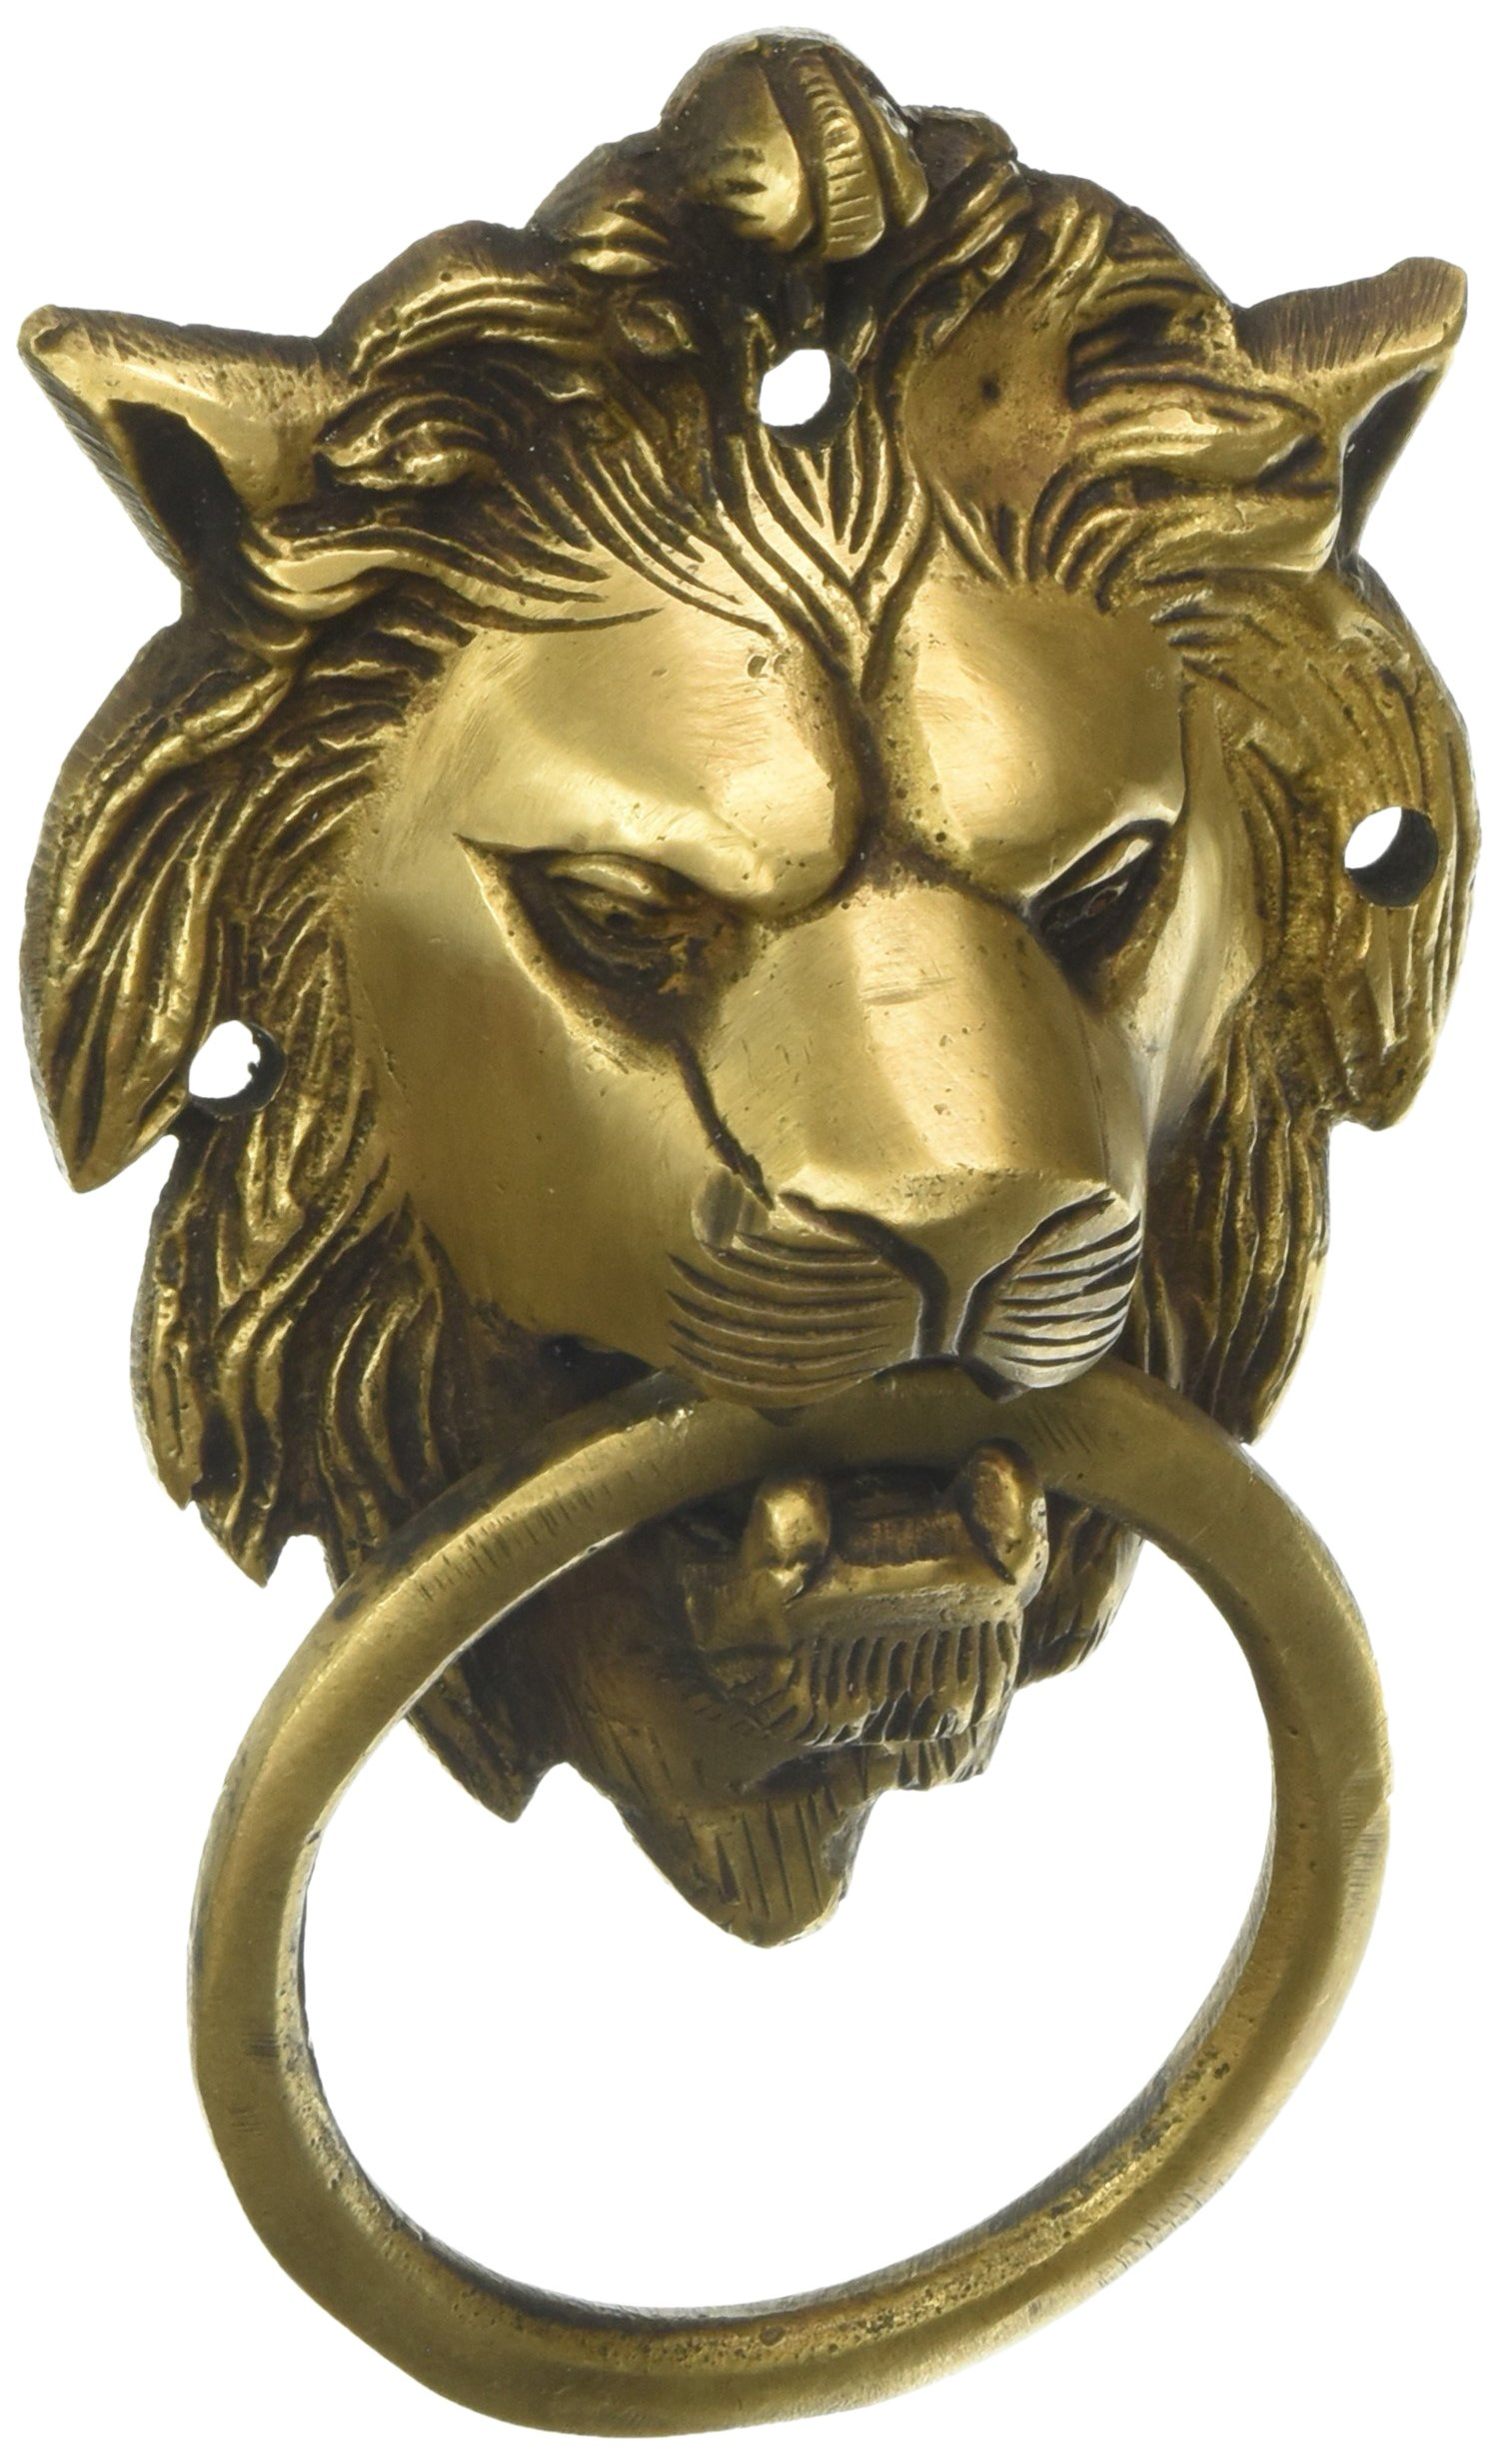 MP Crafts Brass Hand Carved Lion Head Door Knocker Antique Look for Home Door, Shop Door, Decorative, and Gift by MP Crafts